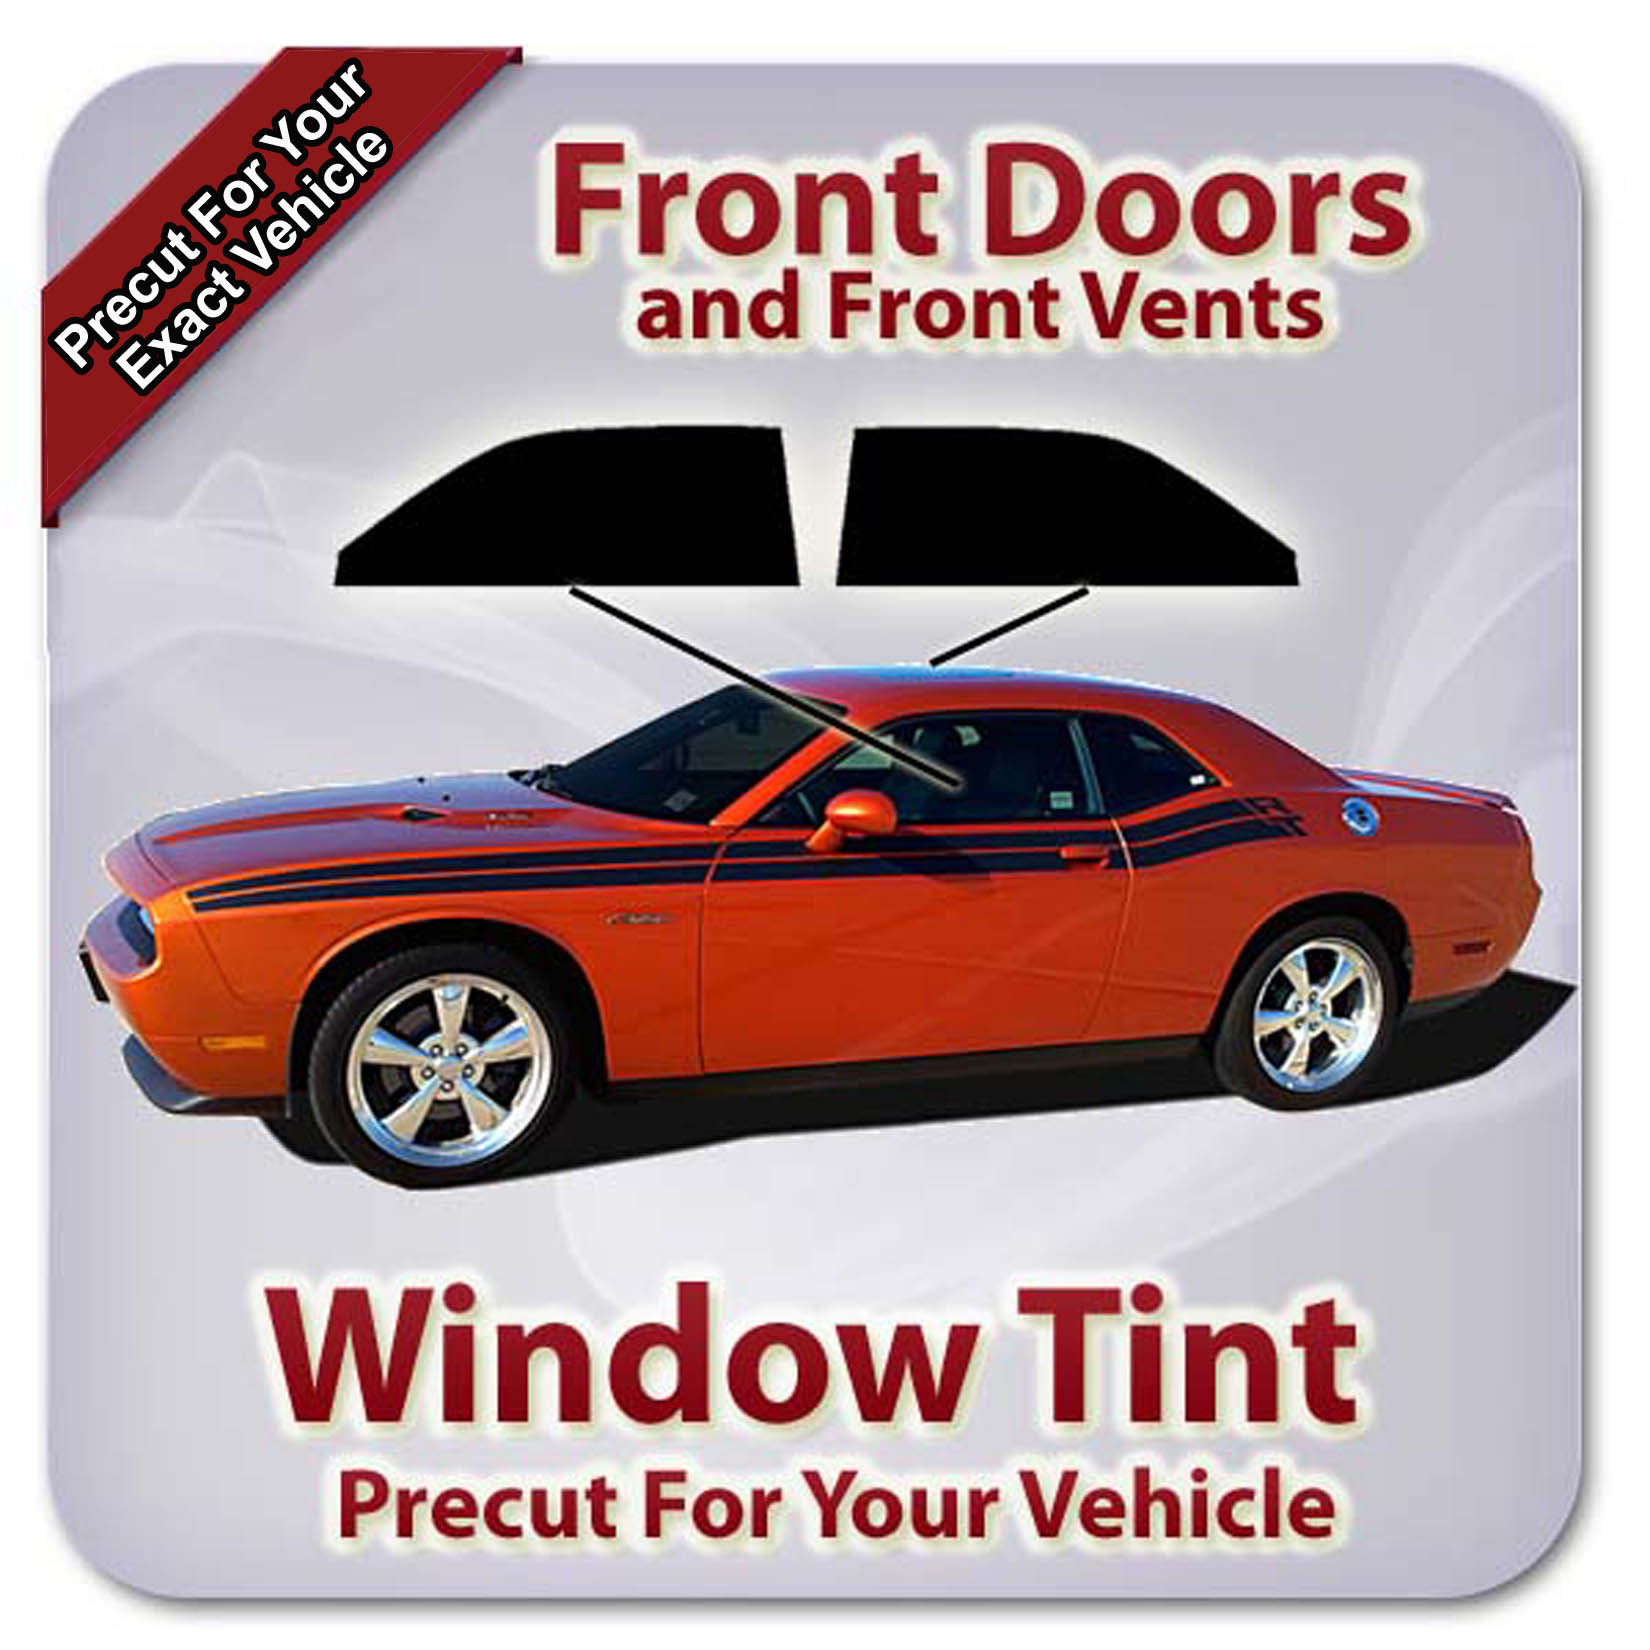 hight resolution of details about precut window tint for dodge ram 1500 crew cab 2009 2018 front doors